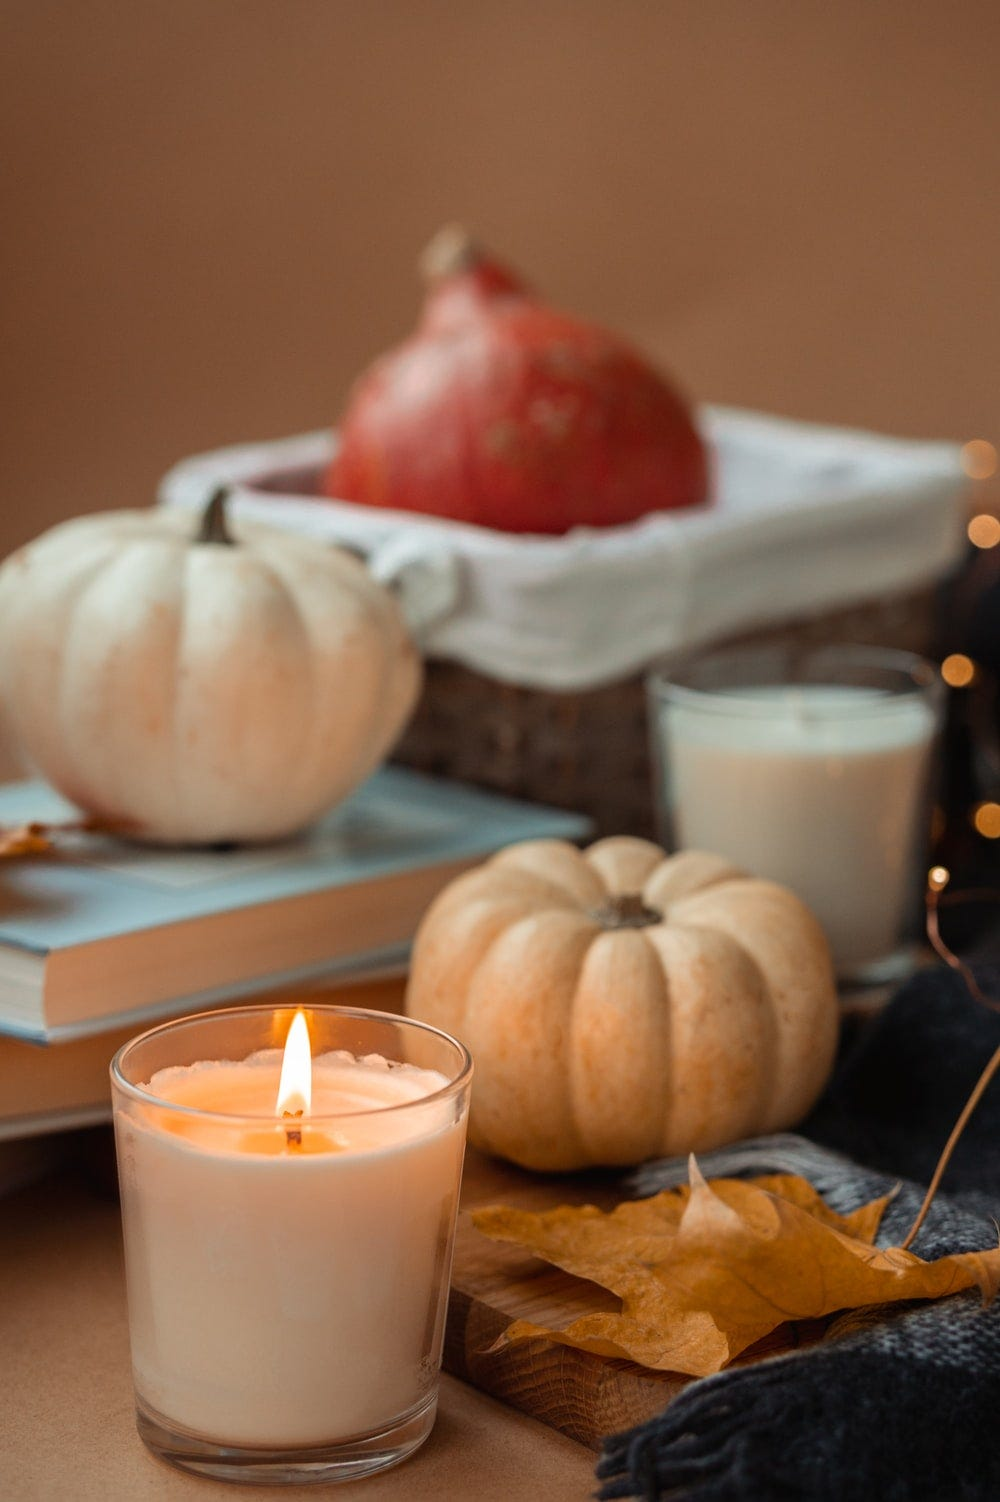 white and red round fruit beside white pillar candle on brown wooden table